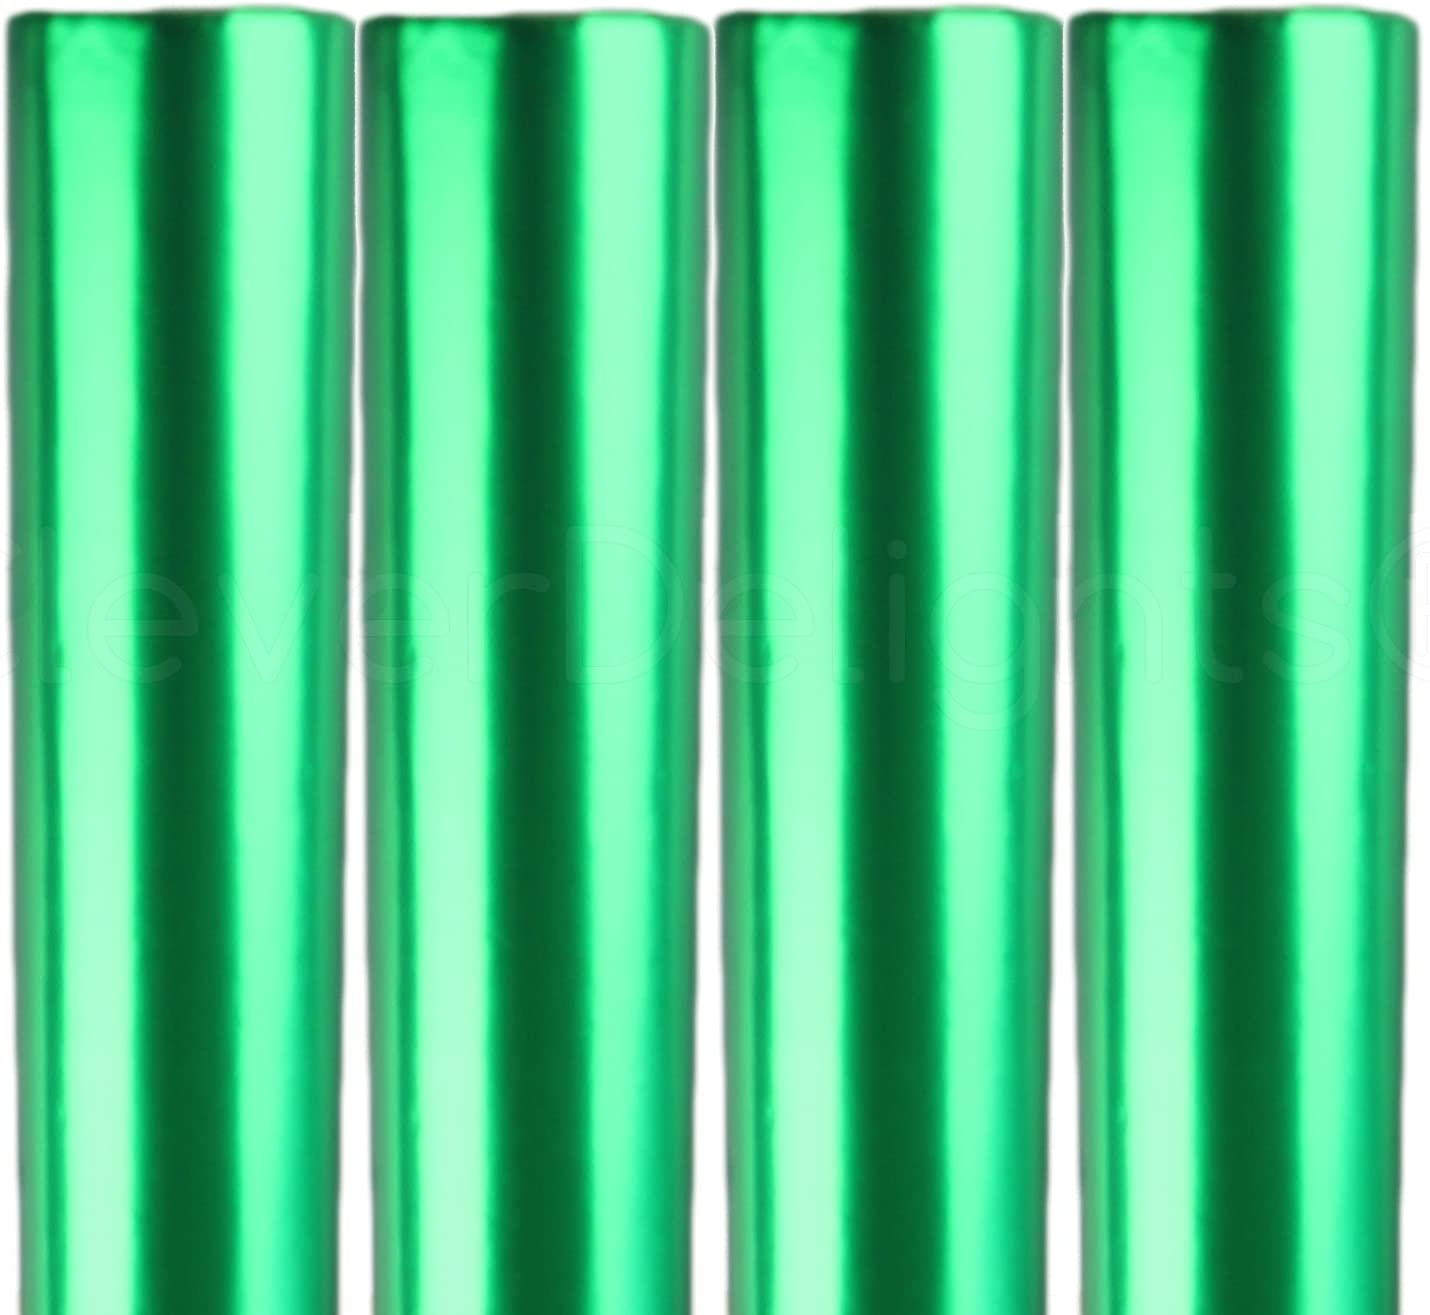 4 Rolls - CleverDelights Metallic Green Paper SALENEW very popular! Wrapping 3 Sale SALE% OFF 30